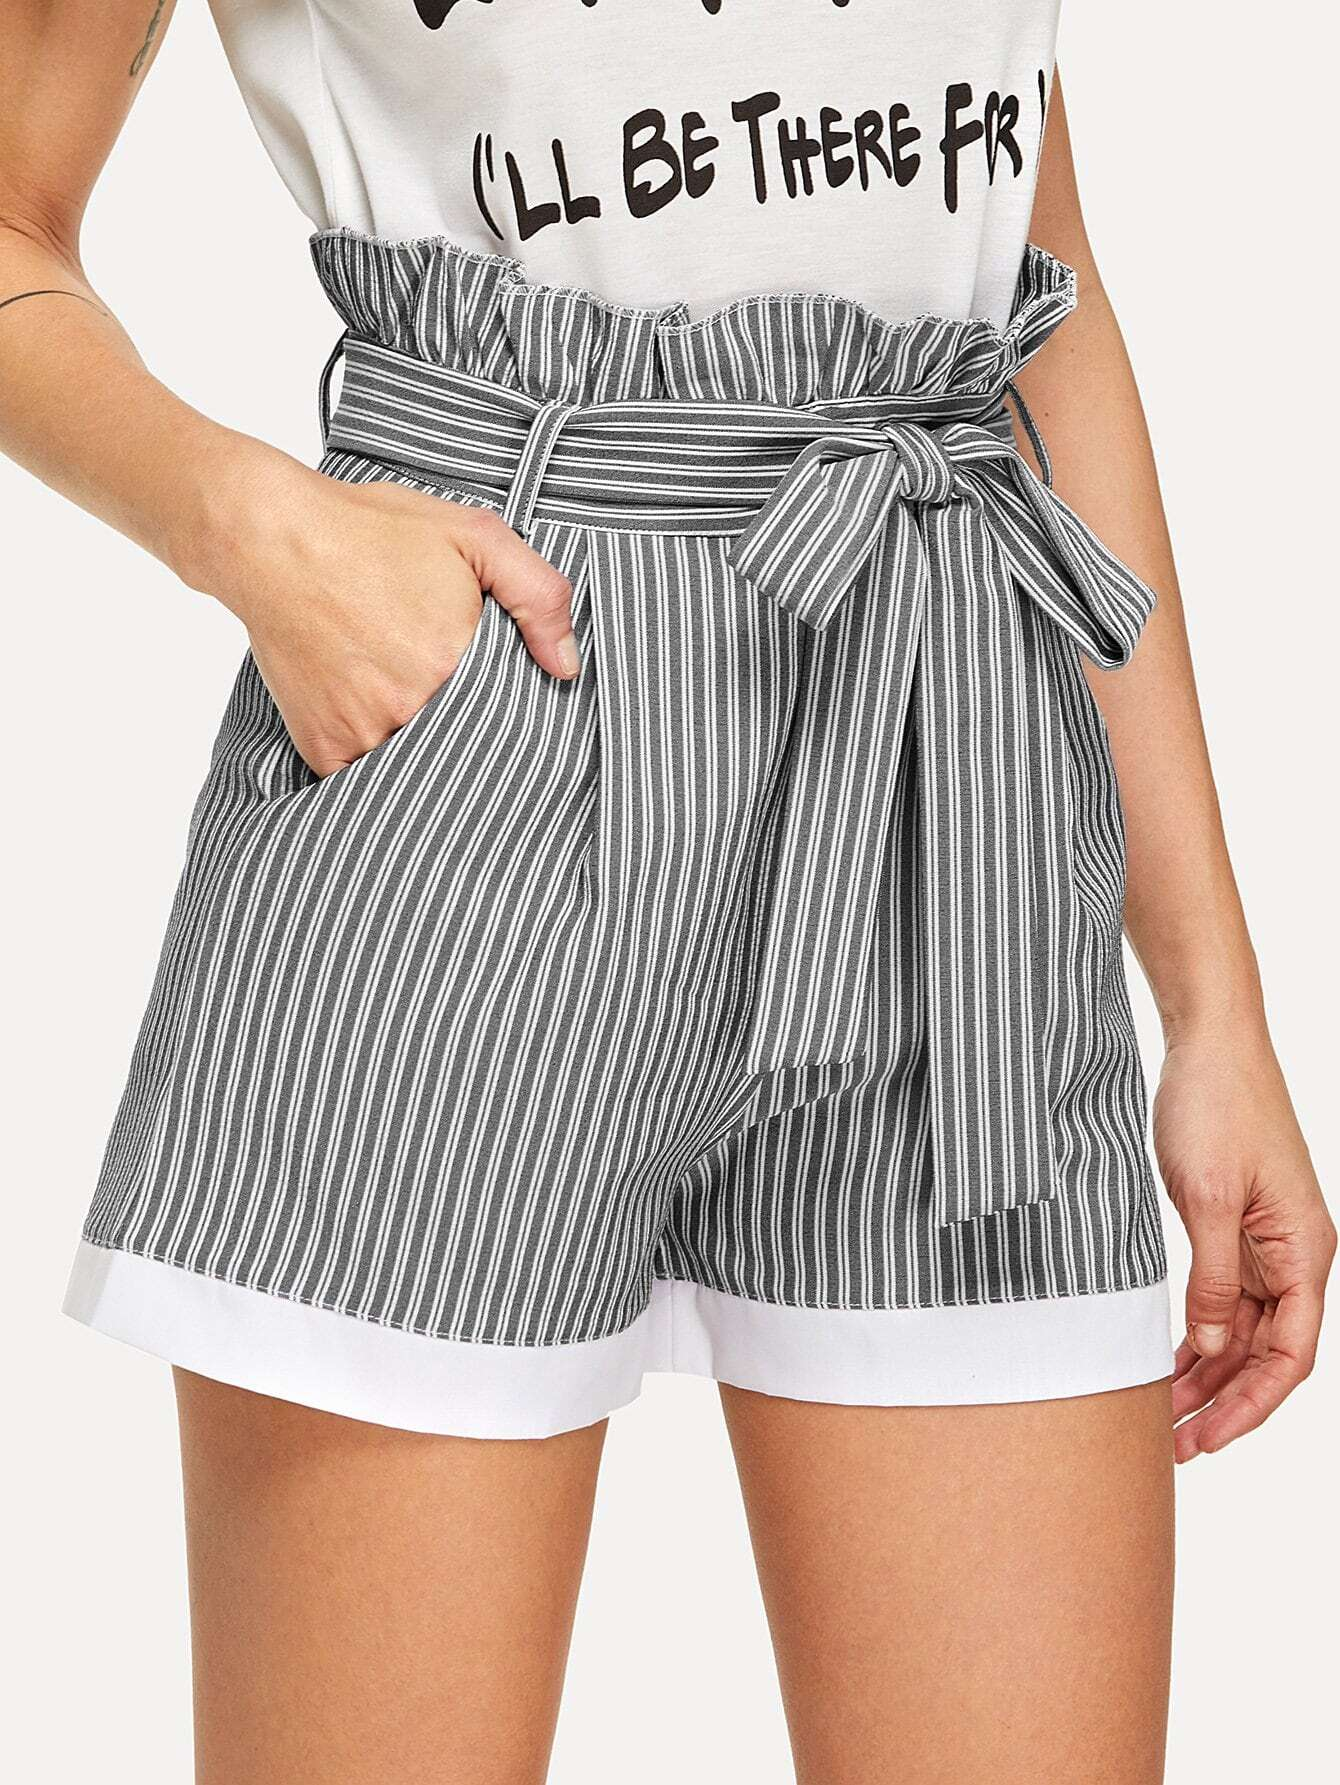 Frill Trim Self Tie Waist Striped Shorts 8 inch and 10 inch 2pcs frosted crystal singing bowls with any note c d e f g a b or any chakra of 7